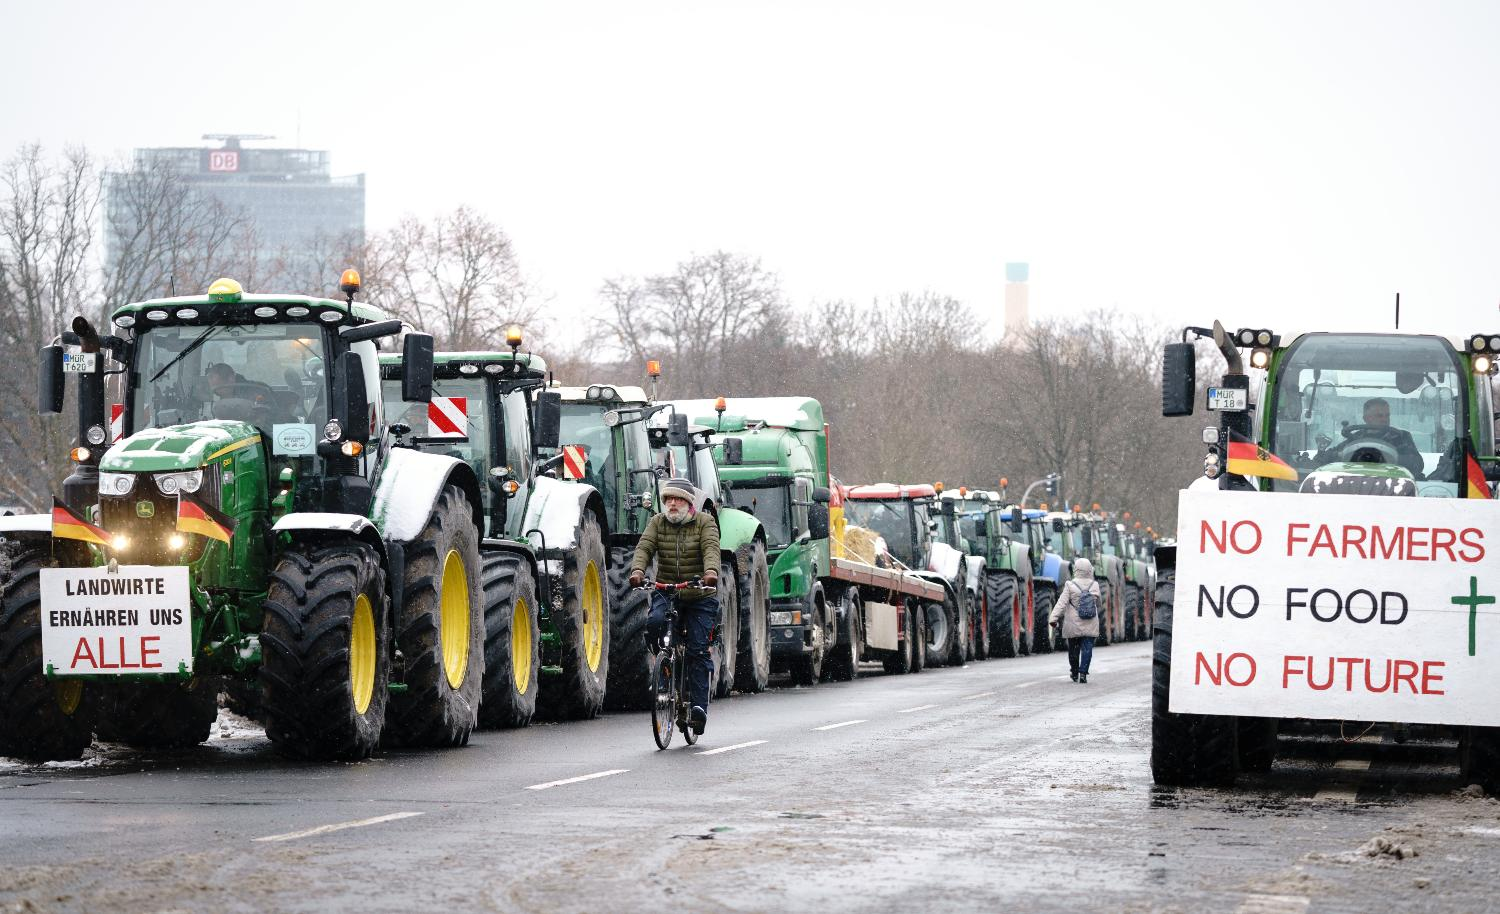 'No food, no future': German farmers protest against insect protection plans